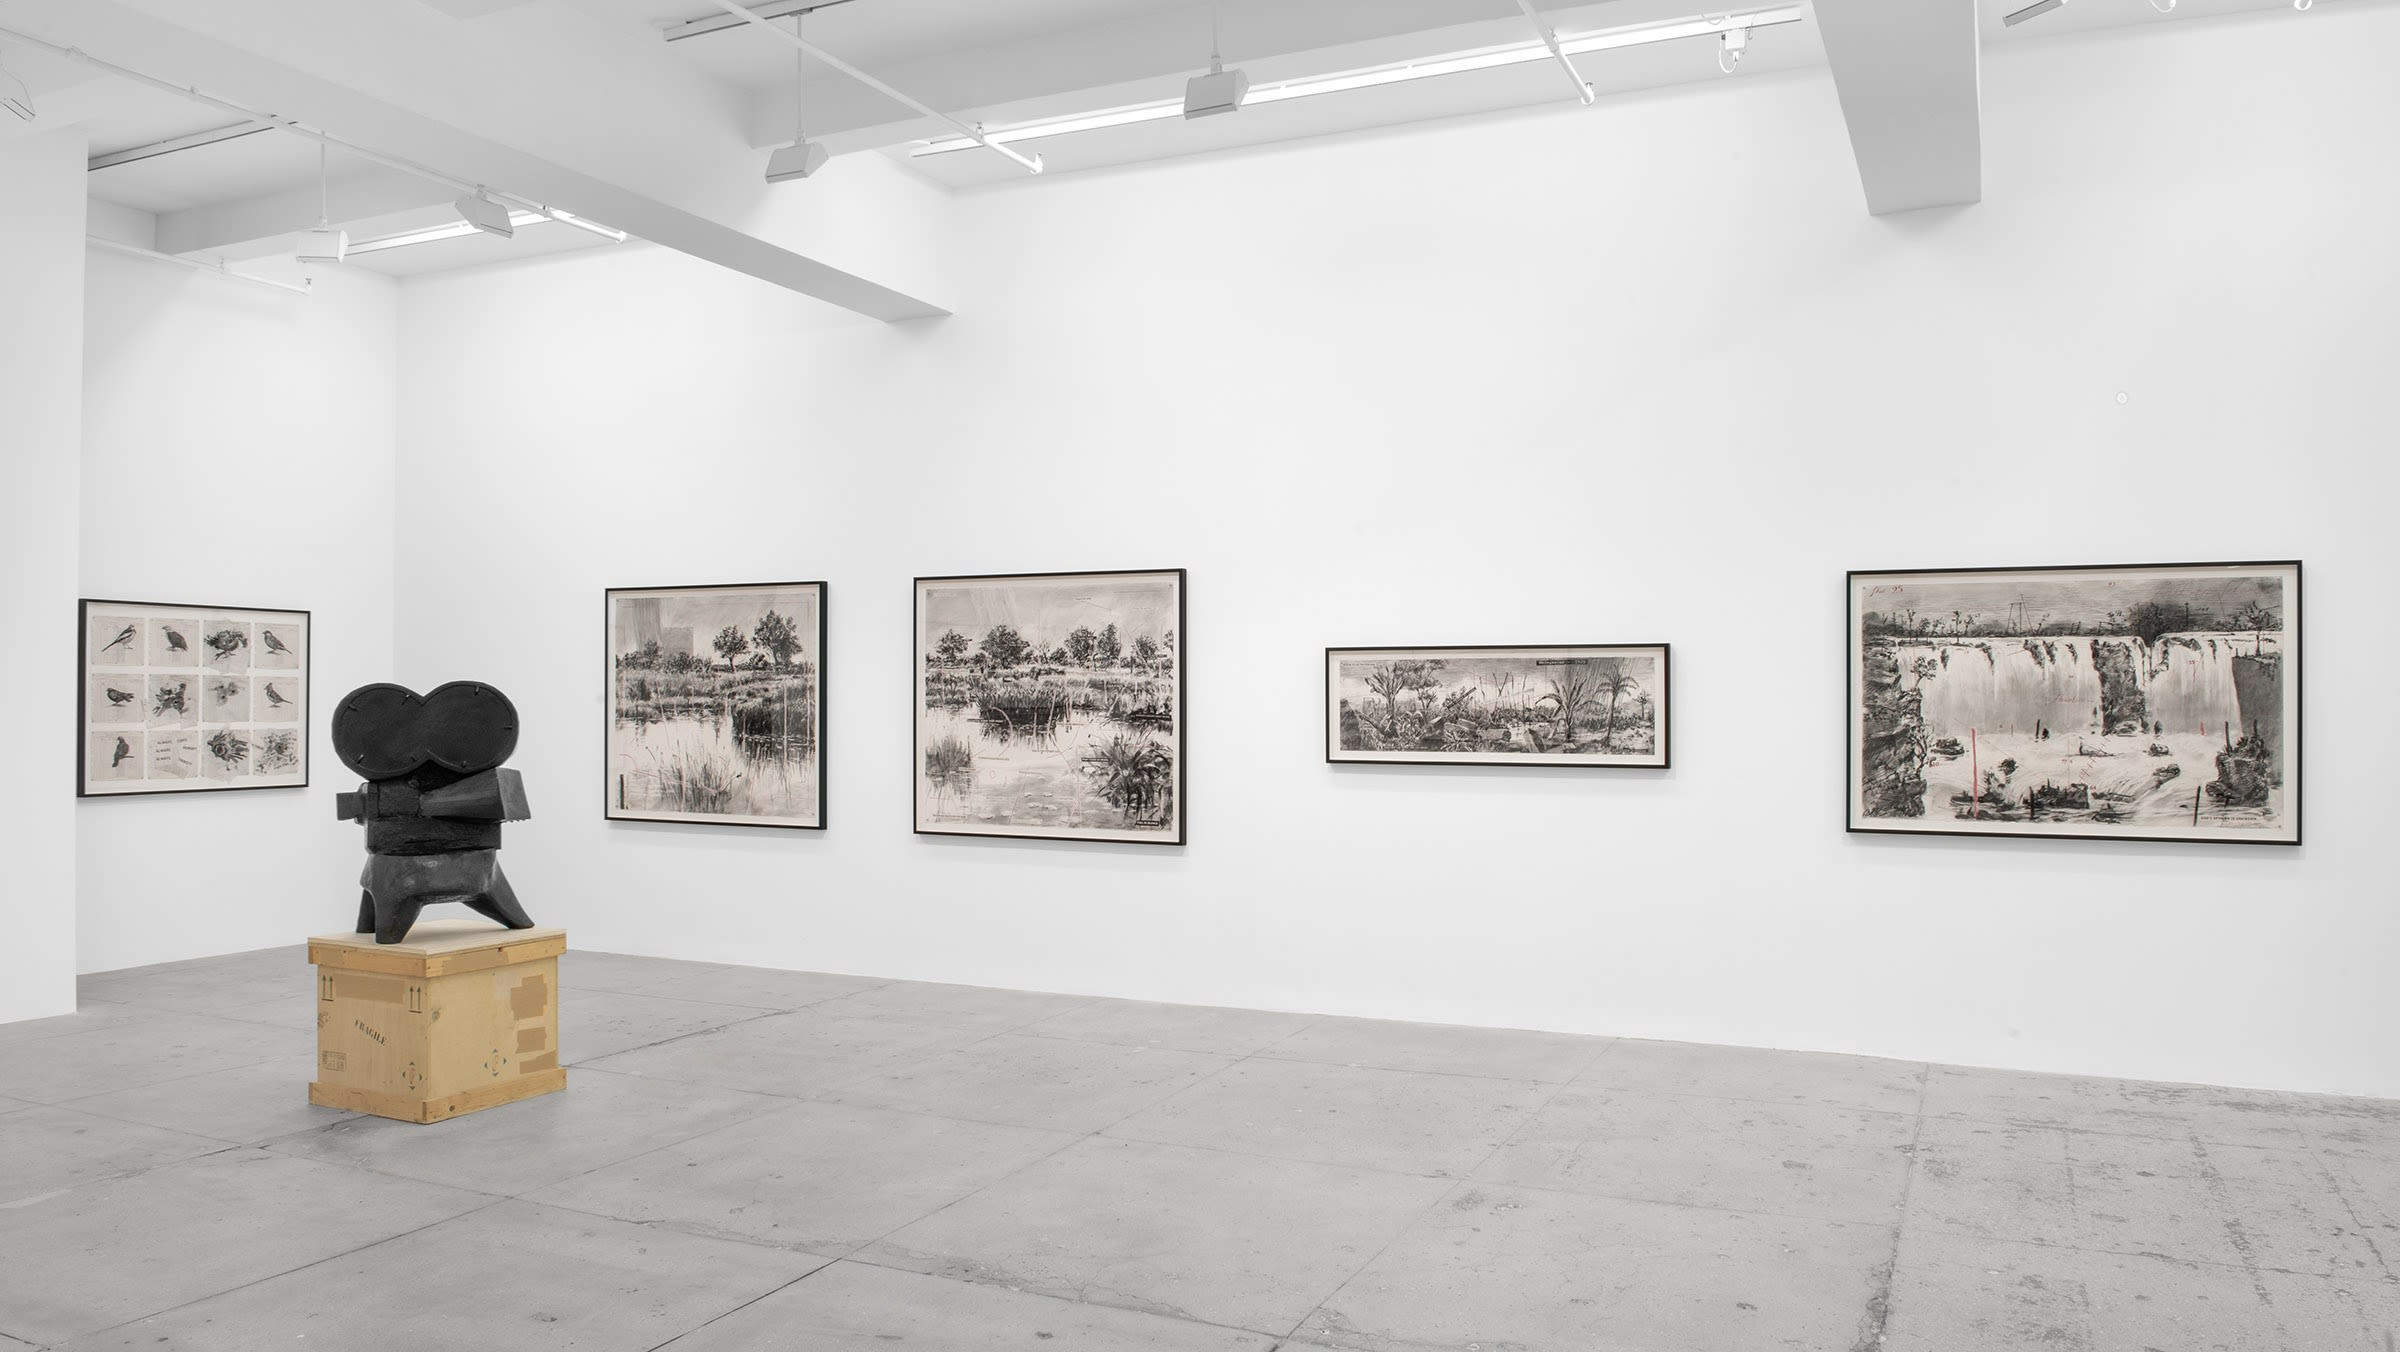 A copper sculpture of an old Hollywood camera stands in front of five graphite drawings of maps, plants and landscapes.